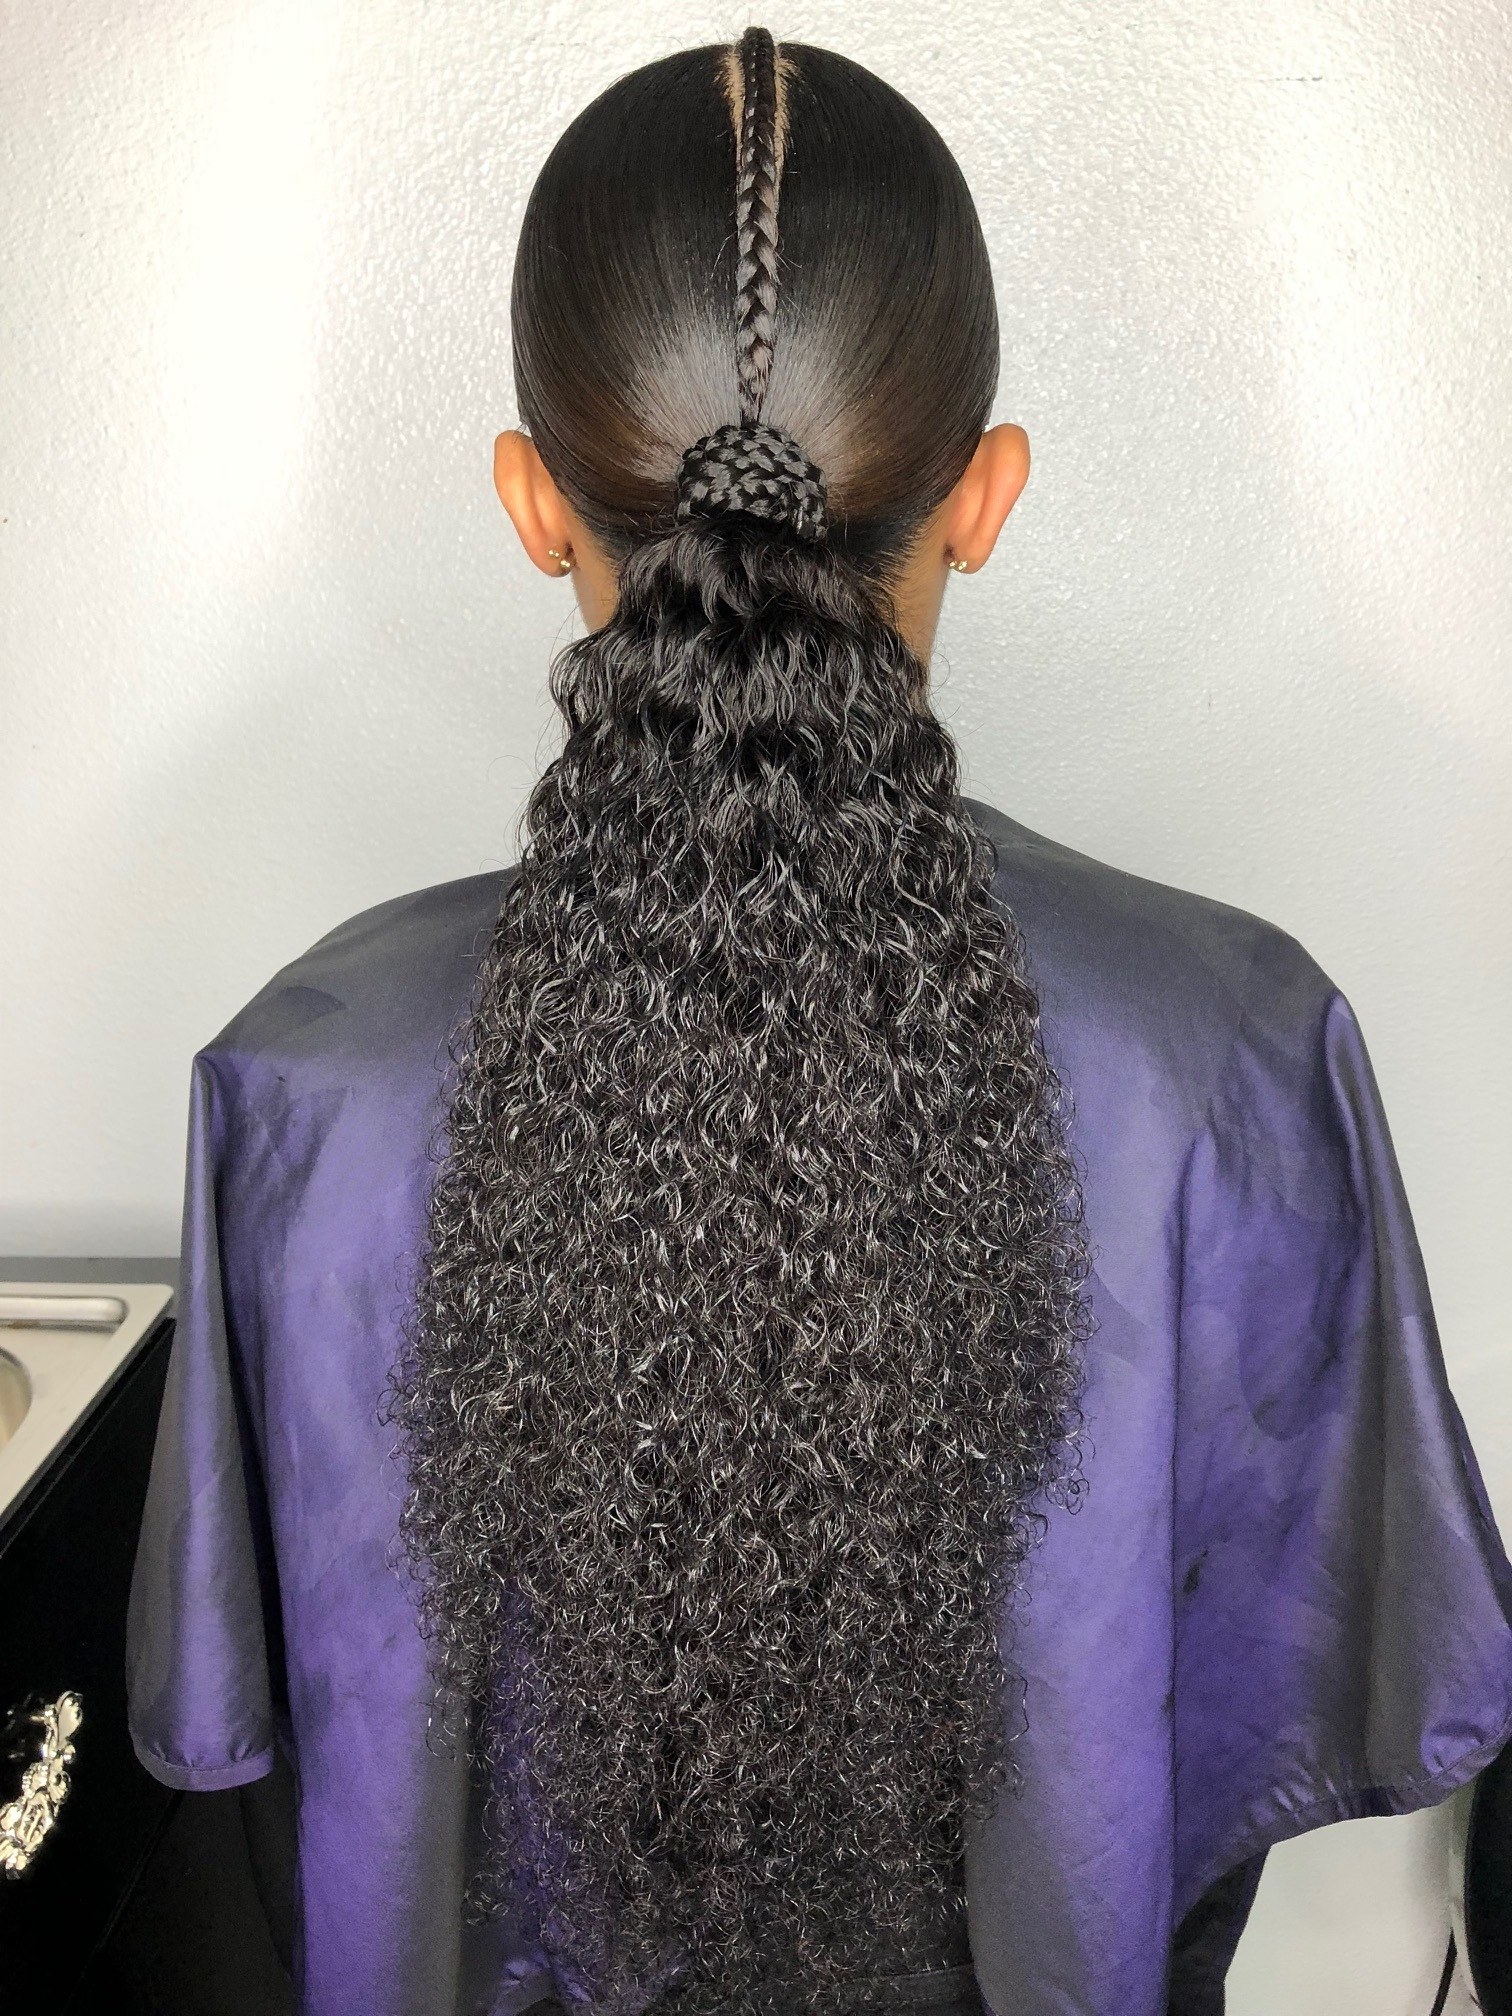 RECOMMENDED FOR PONYTAILS ONLY - KINKY CURLY